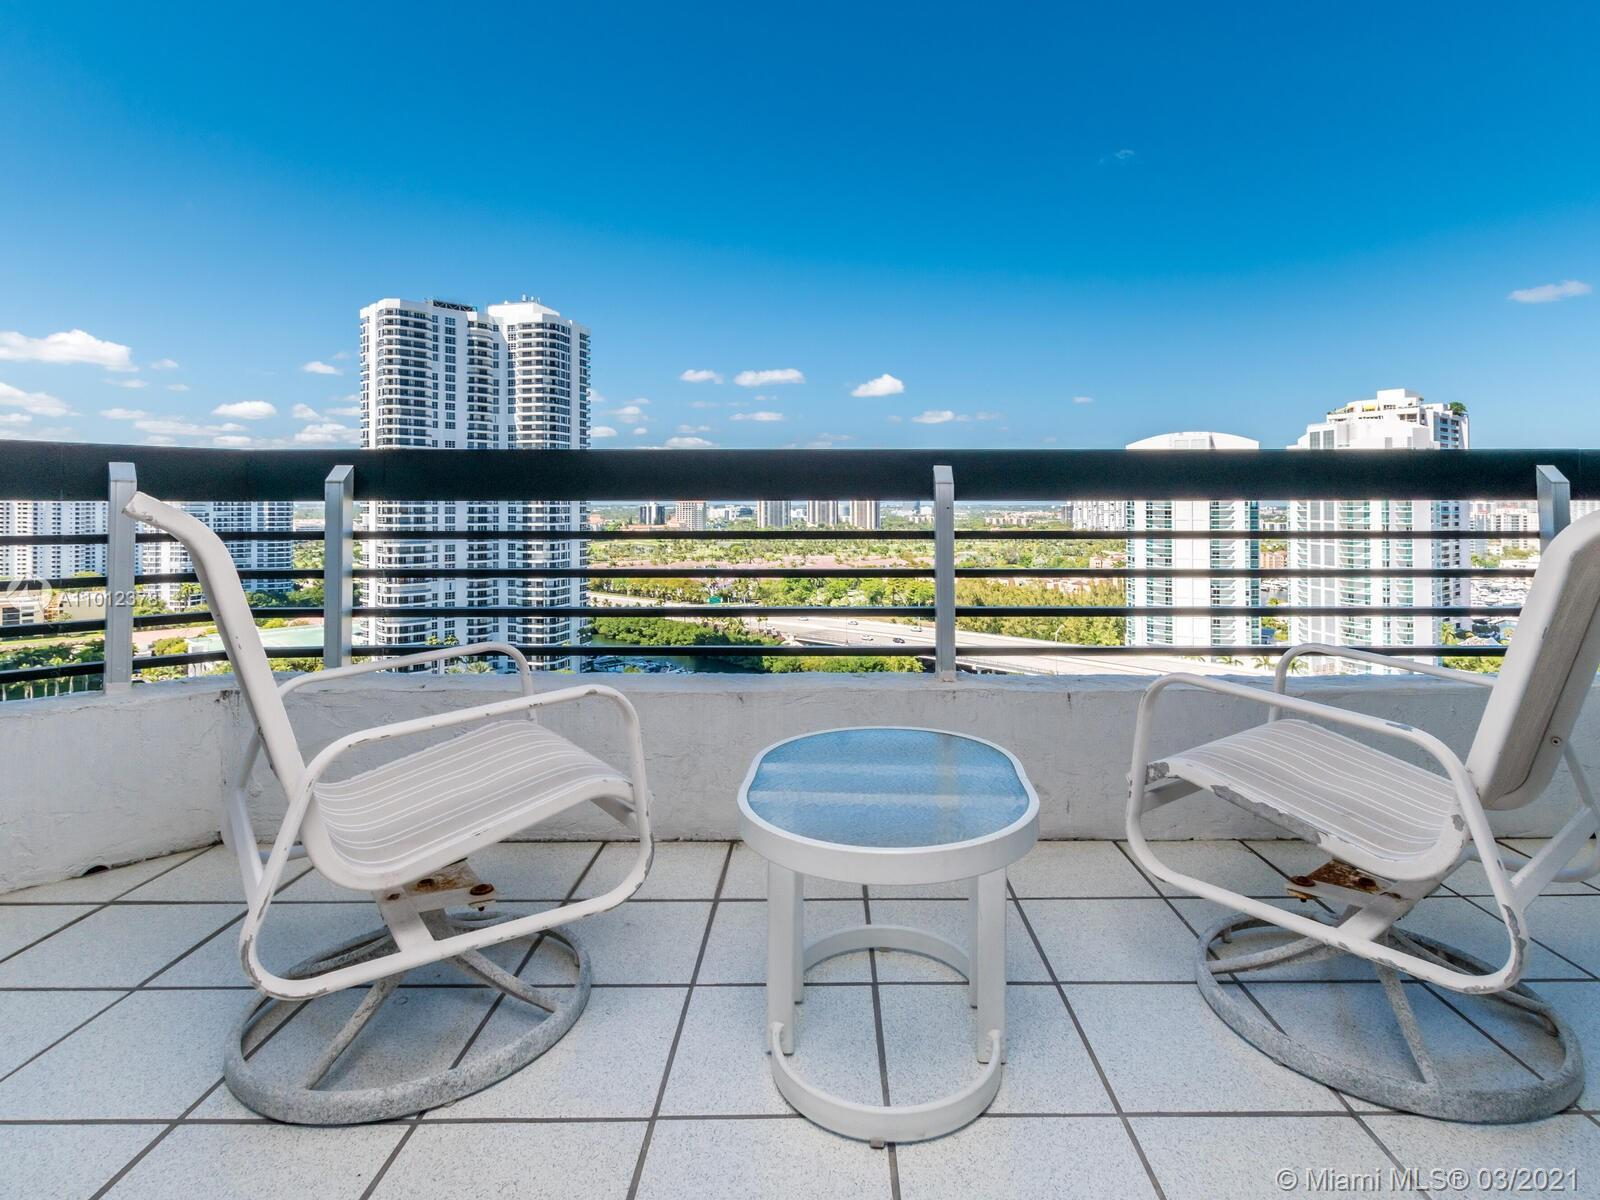 Mystic Pointe Tower 200 - condos for sale